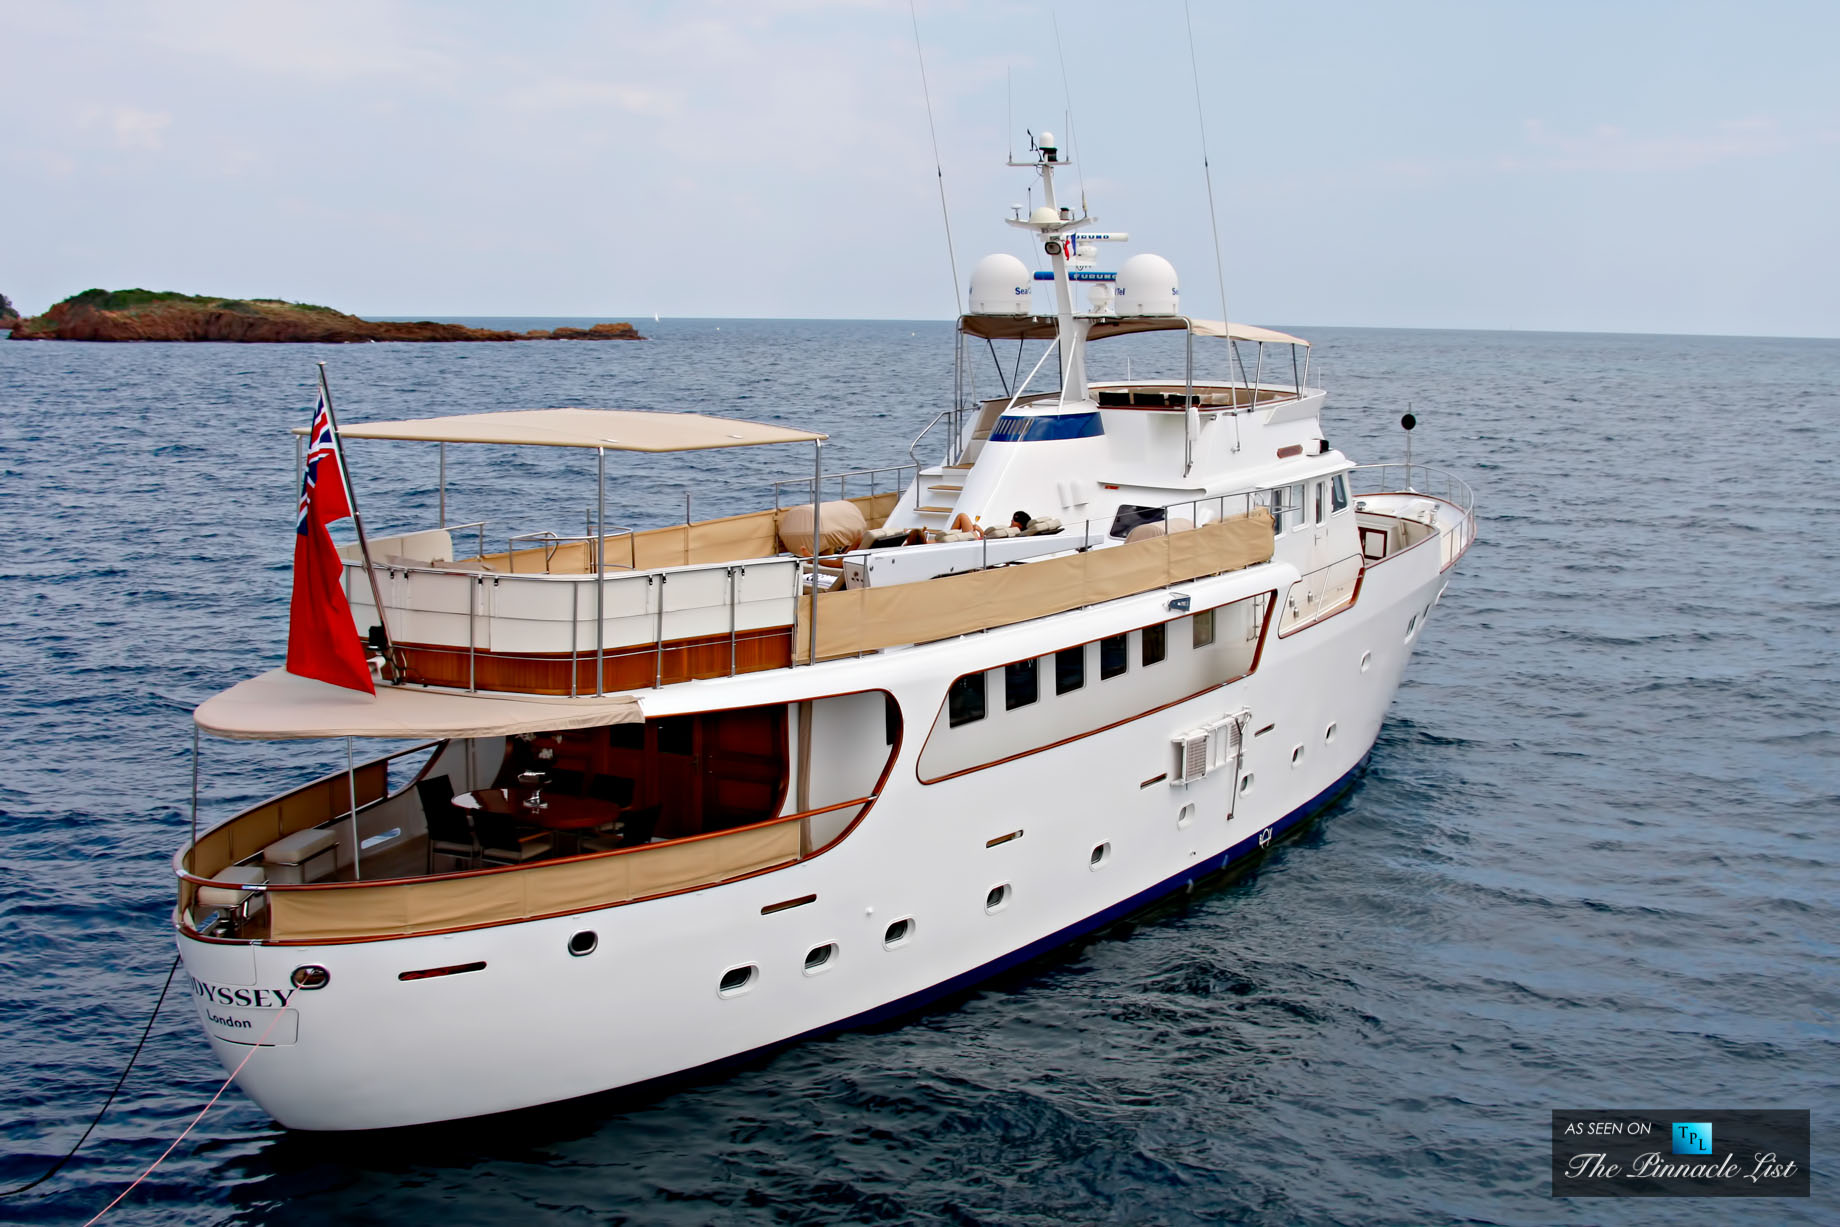 Il Odissey – Four Classic Superyachts Offering Timeless Elegance and Modern Comfort